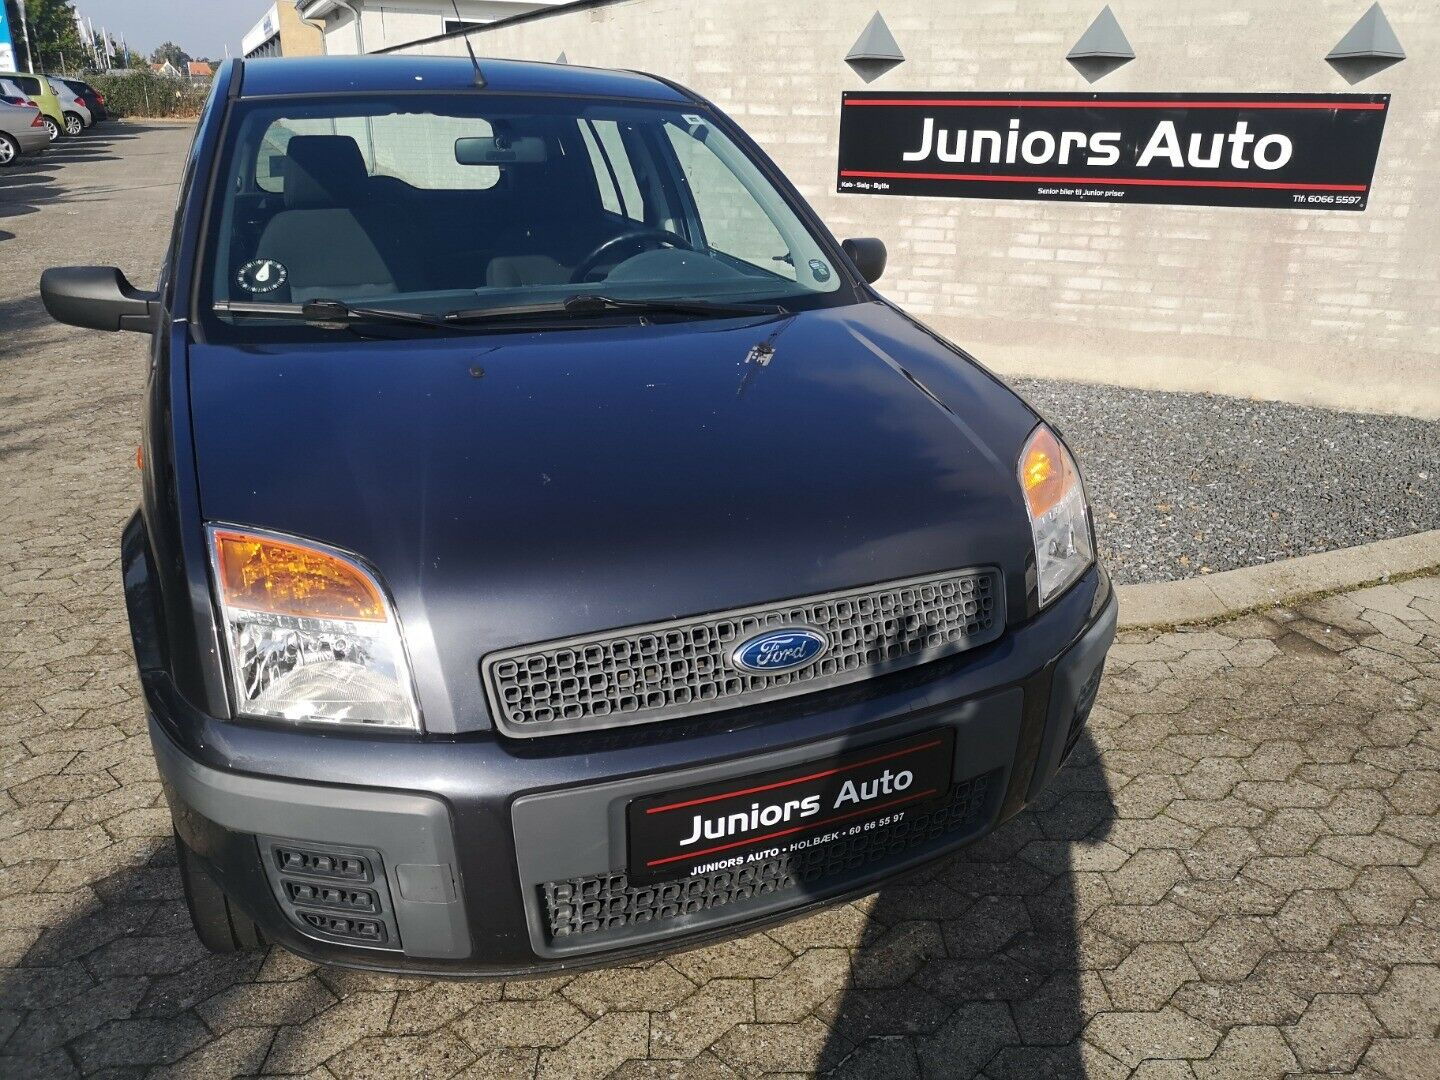 Ford Fusion 1,4 TDCi 68 Trend 5d